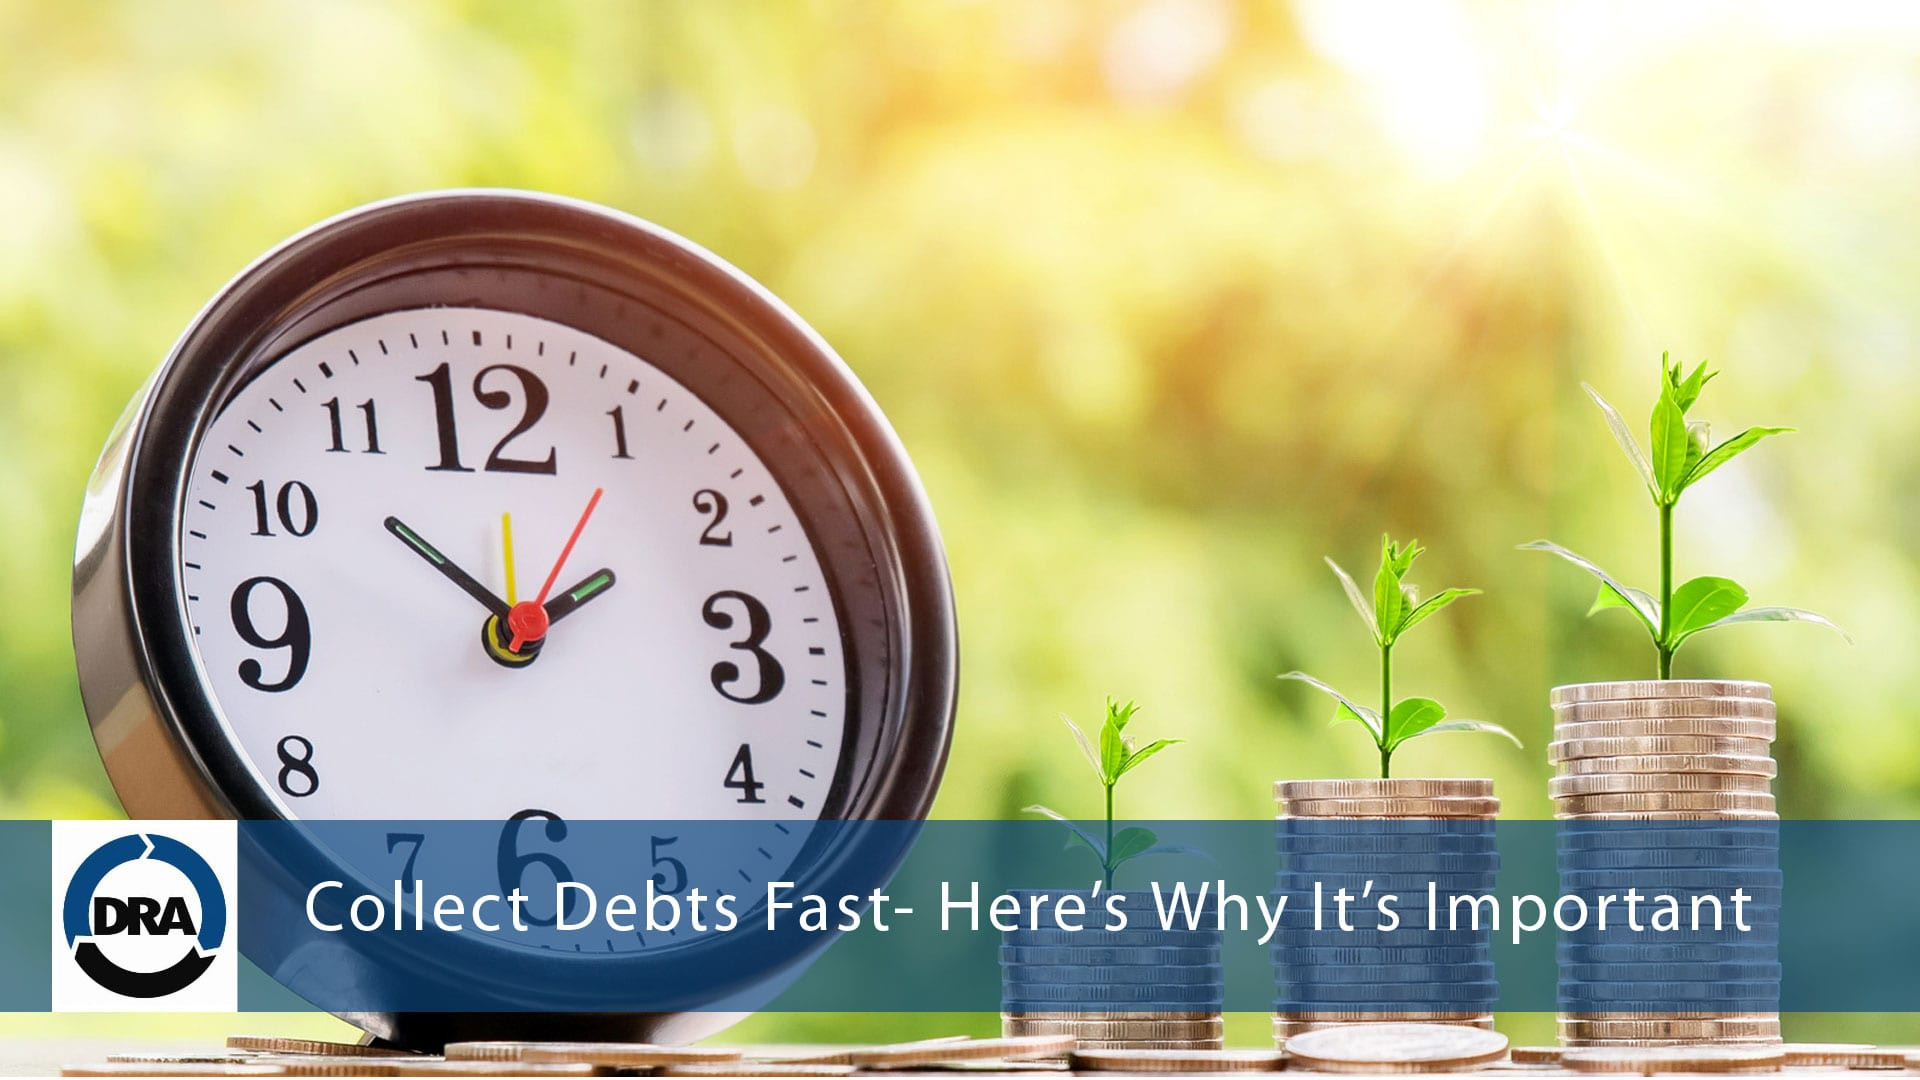 Collect-Debts-Fast--Here's-Why-It's-Important